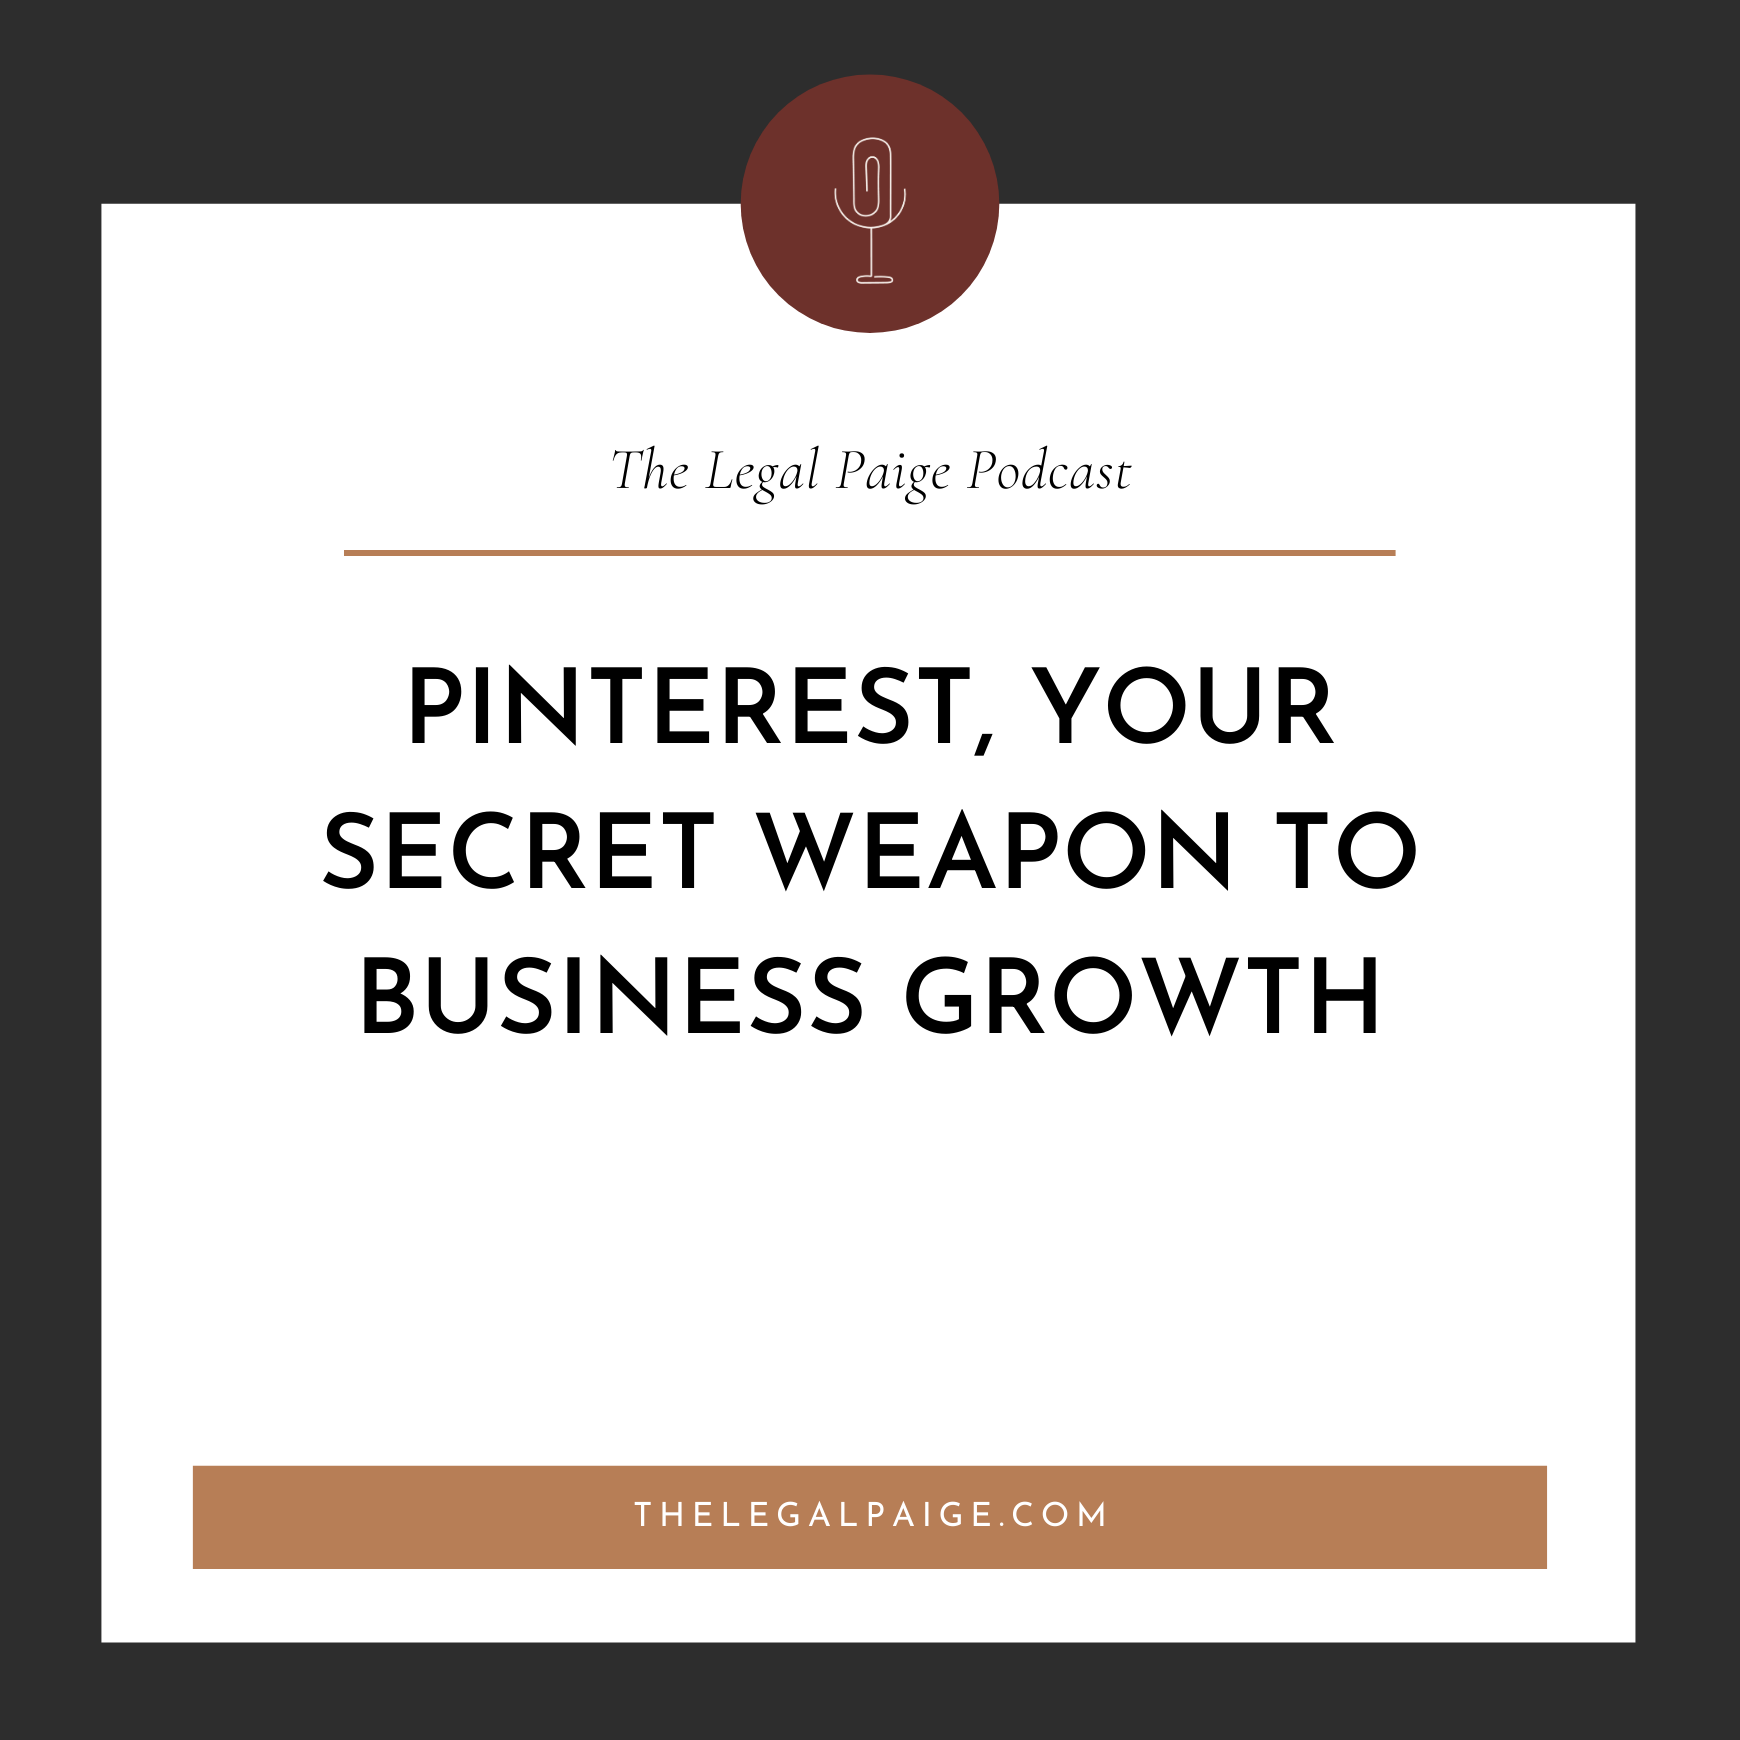 PINTEREST, YOUR SECRET WEAPON TO BUSINESS GROWTH